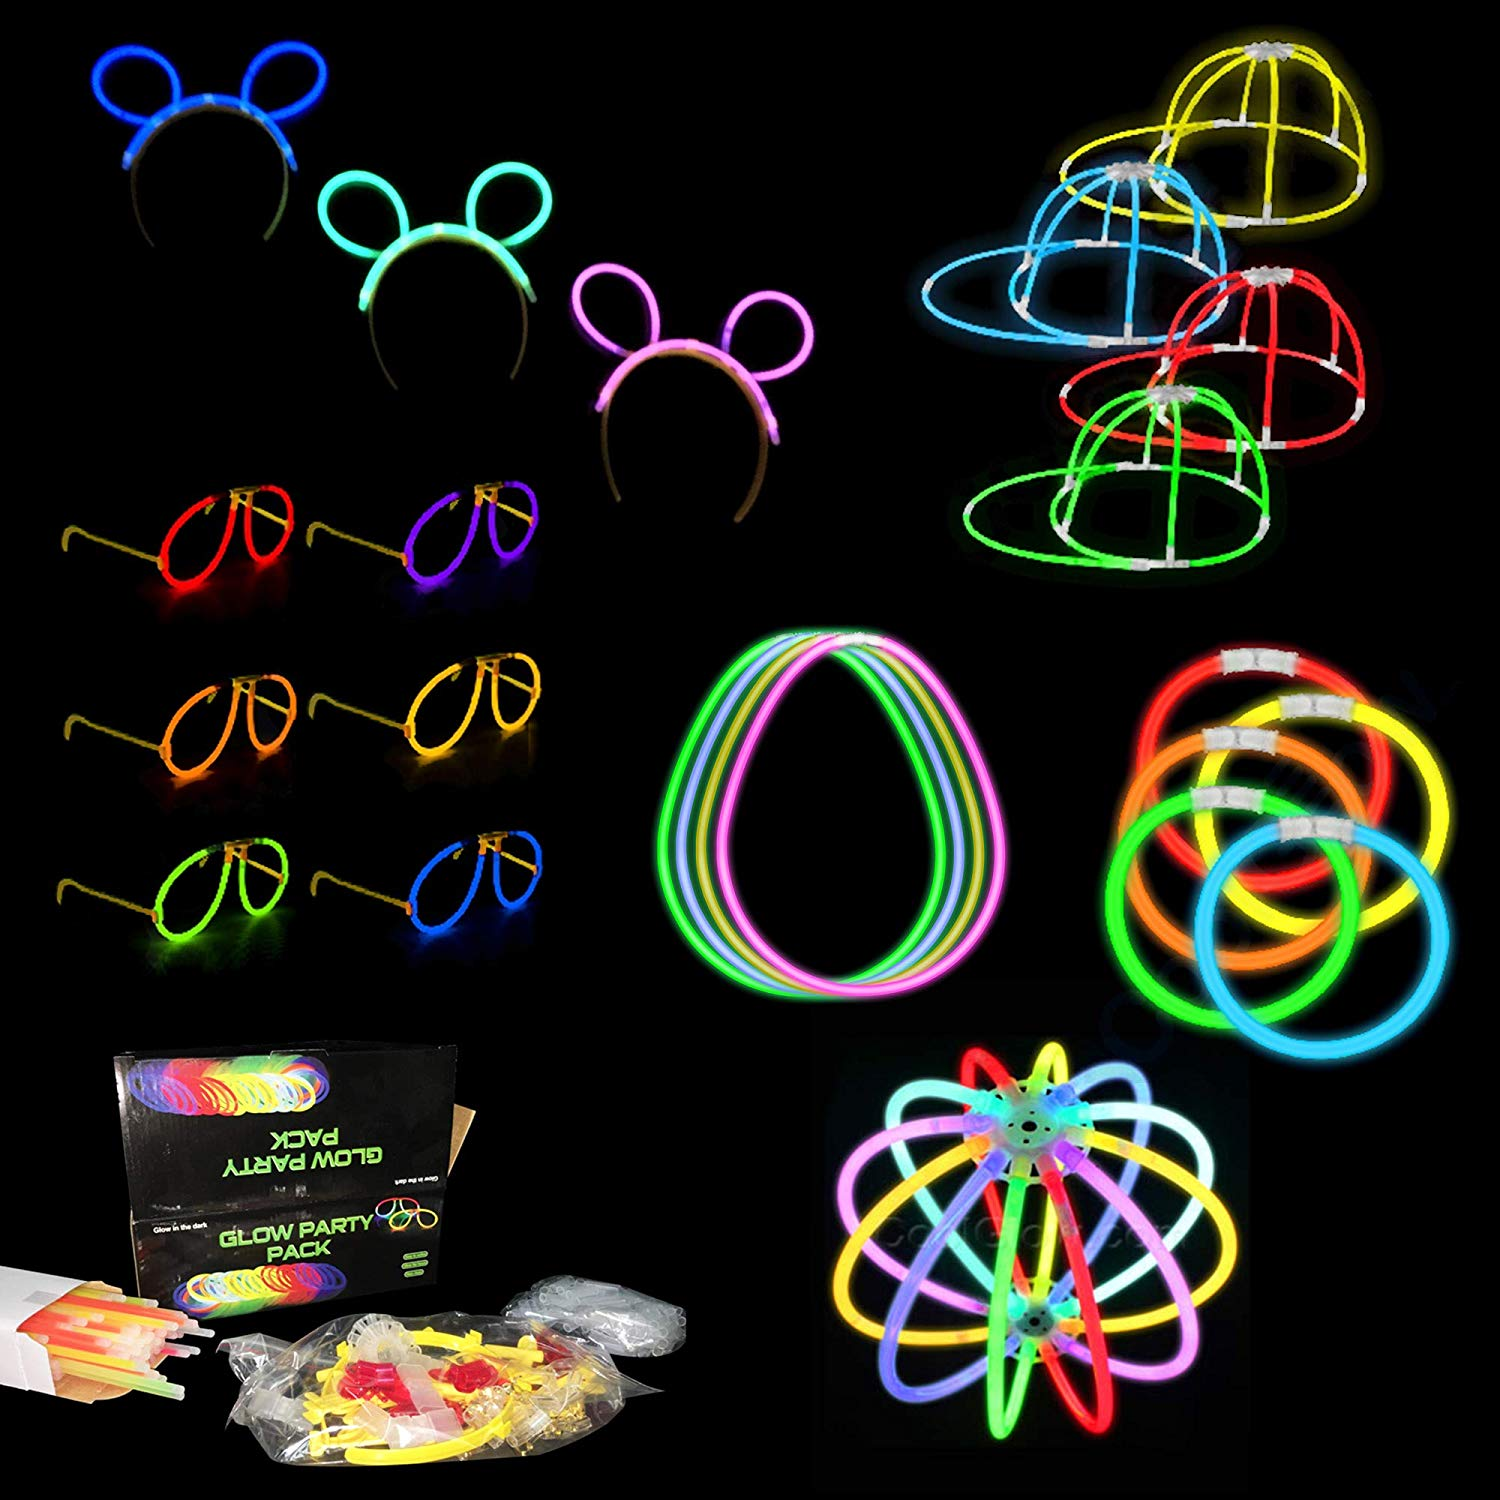 Fun Central BC906 8 Inch Glow in the Dark Party Pack - 200 Count Set